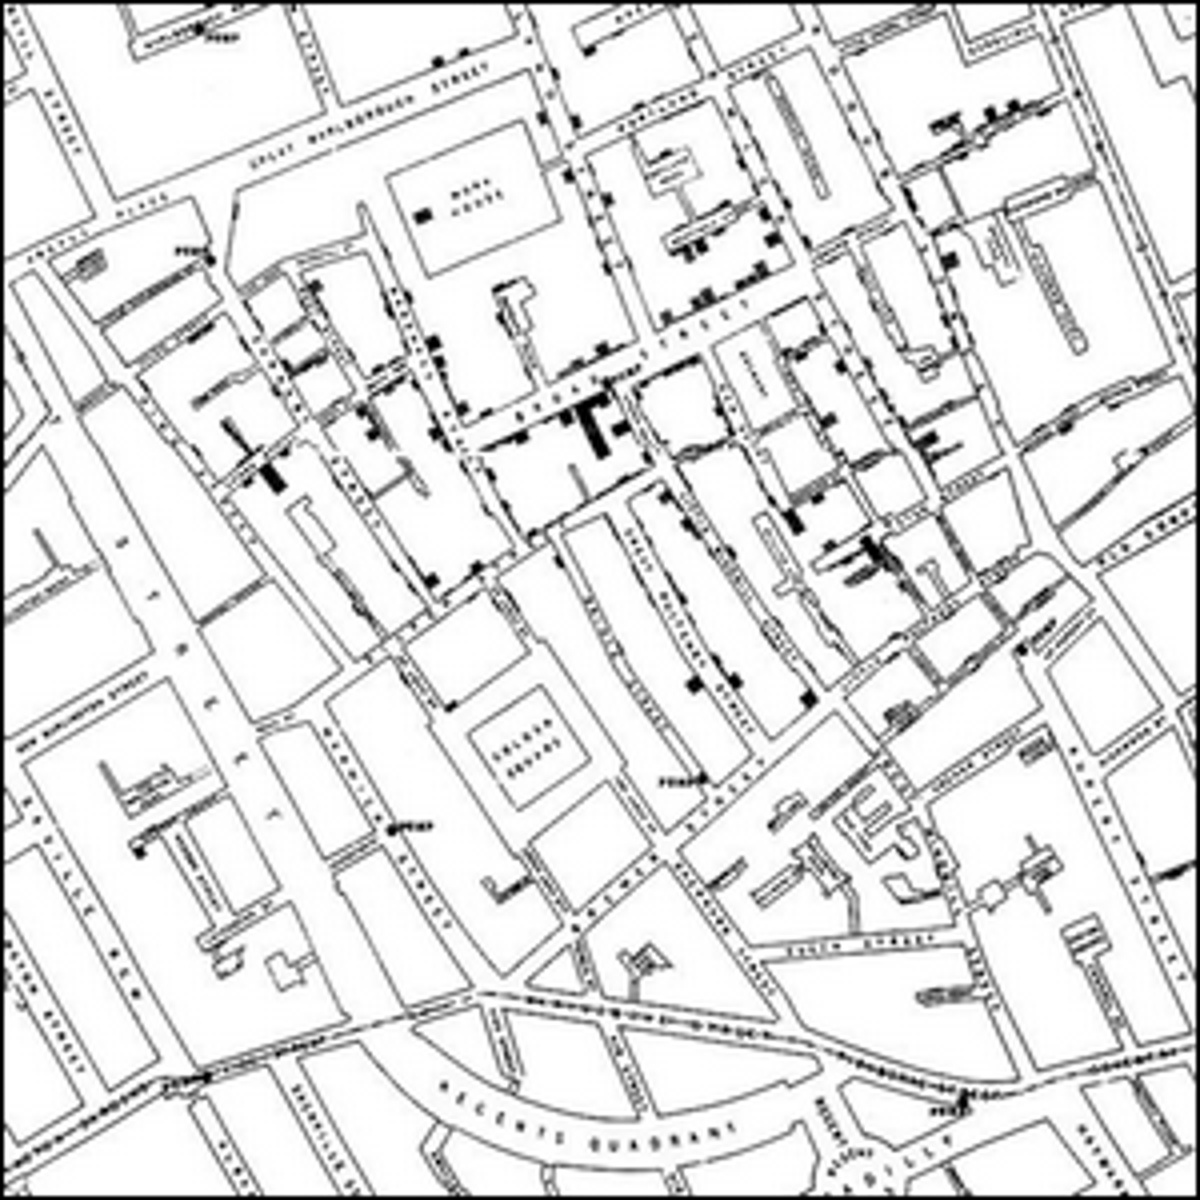 The map made by John Snow showing the cholera cases in the London epidemic of 1854.